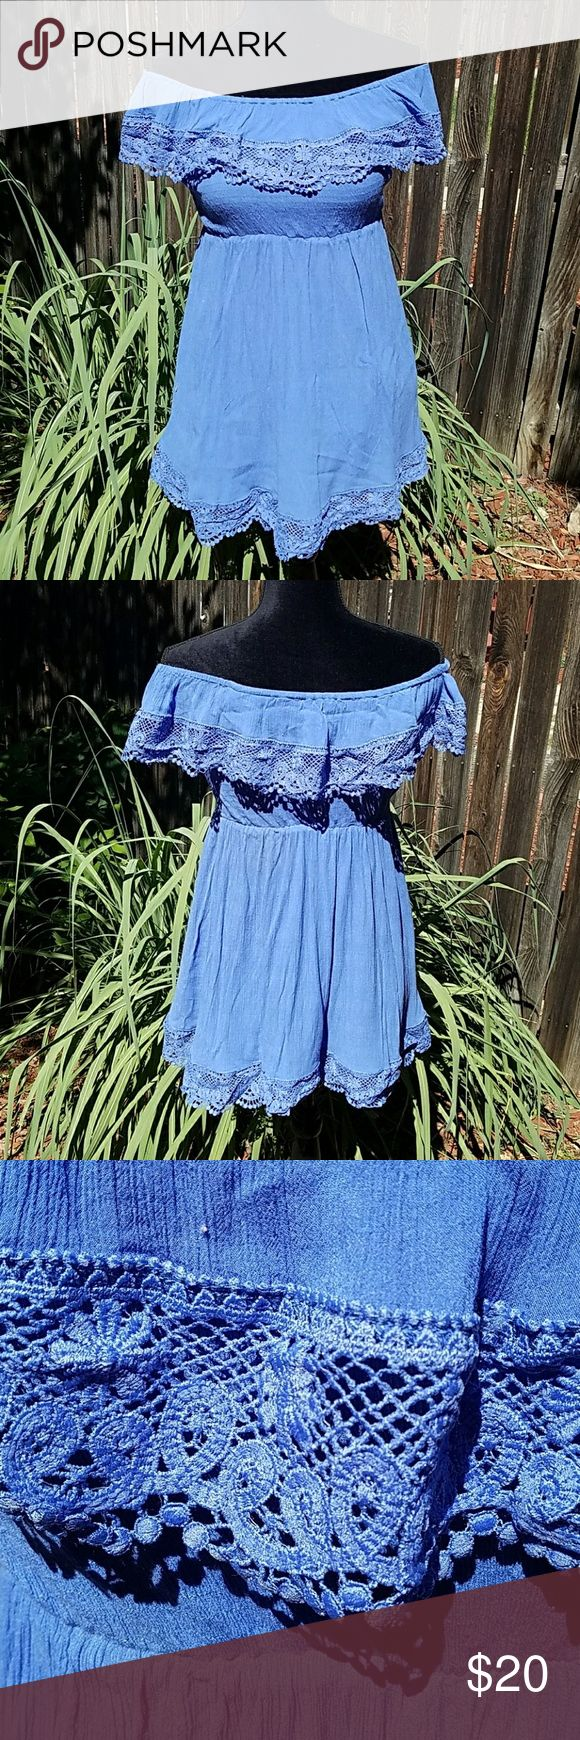 Missguided crochet trim bardot skater dress Cute skater dress in a light cheesecloth fabric.  Bardot neckline with crochet trim and crochet trim around the skirt.  Perfect casual summer dress in perfect like new condition! Missguided Dresses Mini